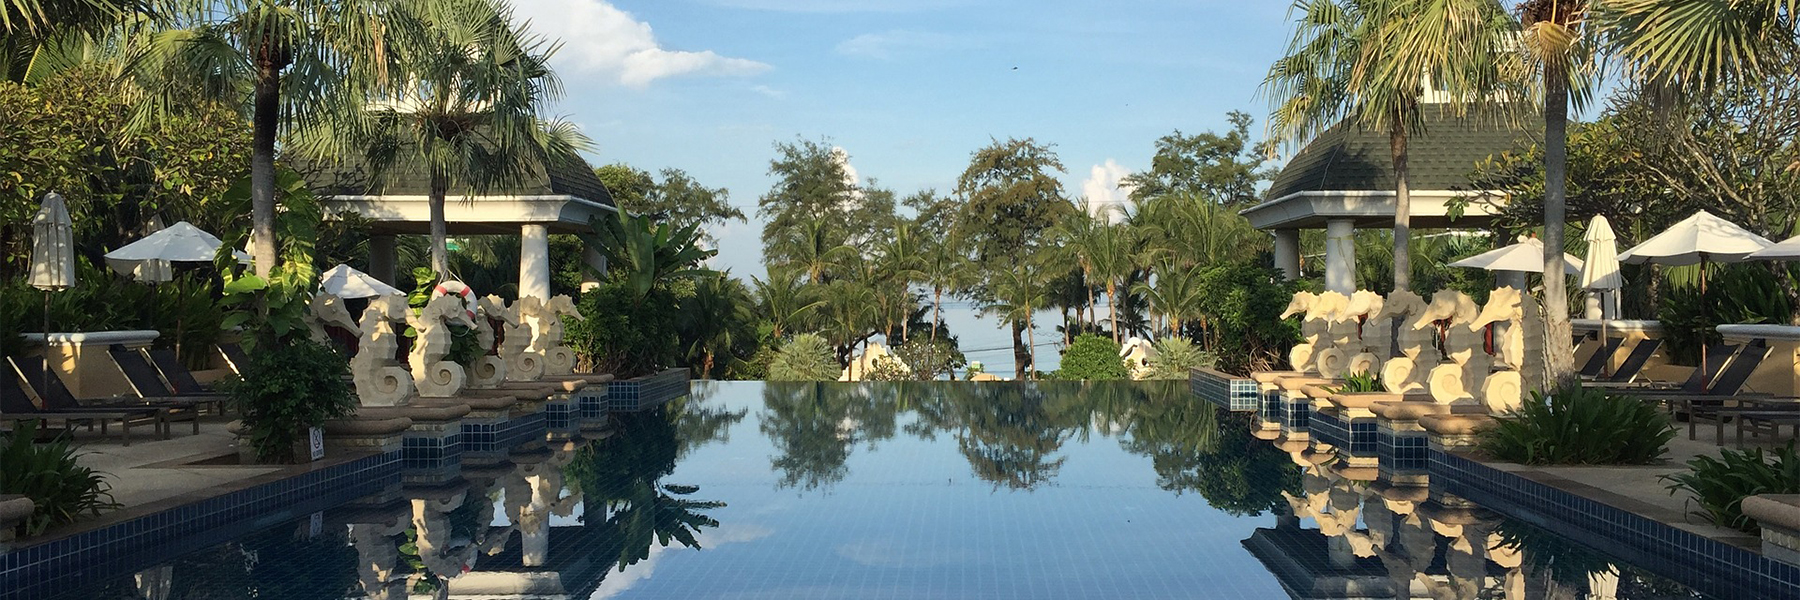 Buy Property for Sale in Phuket with List Sotheby's International Realty Thailand